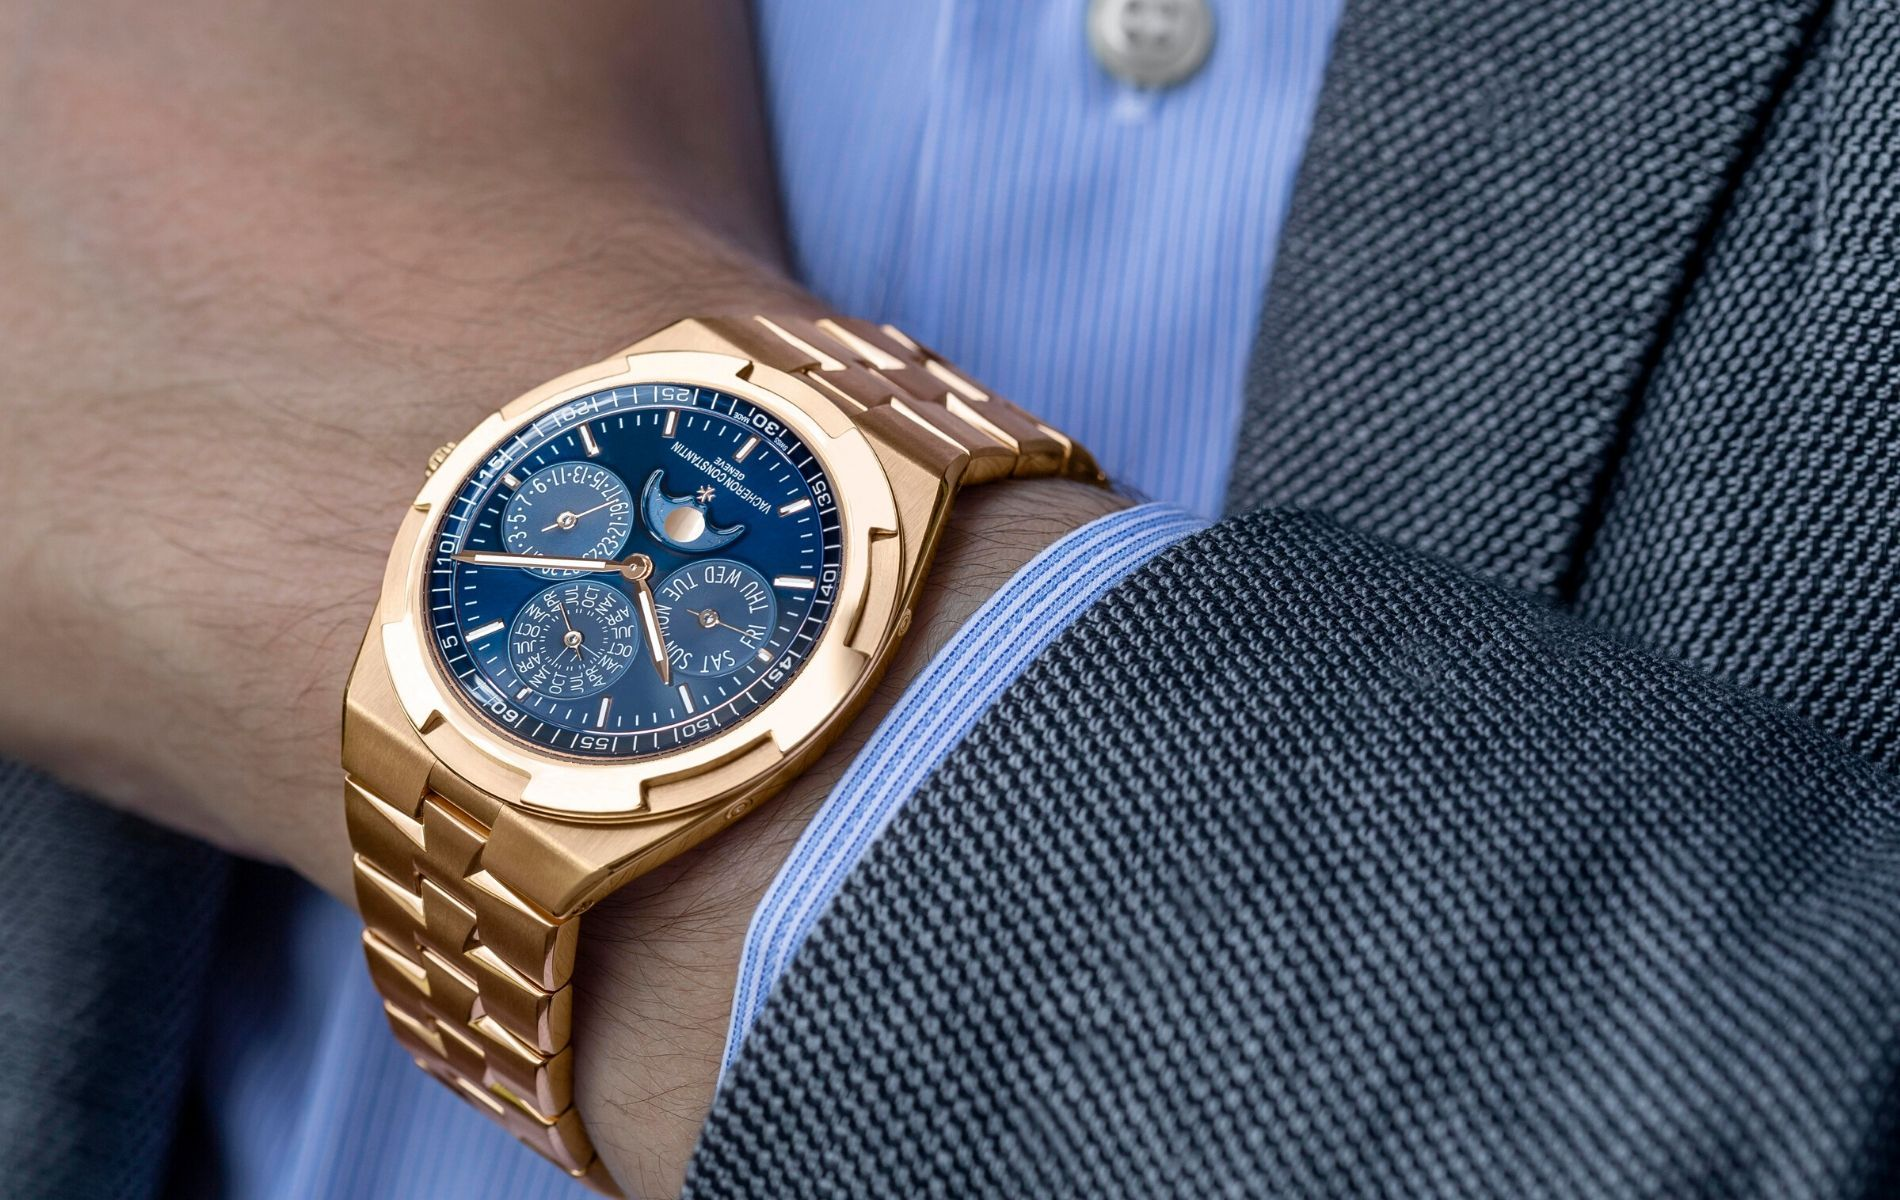 Watches & Wonders 2020: The Best New Watches From Piaget To Vacheron Constantin